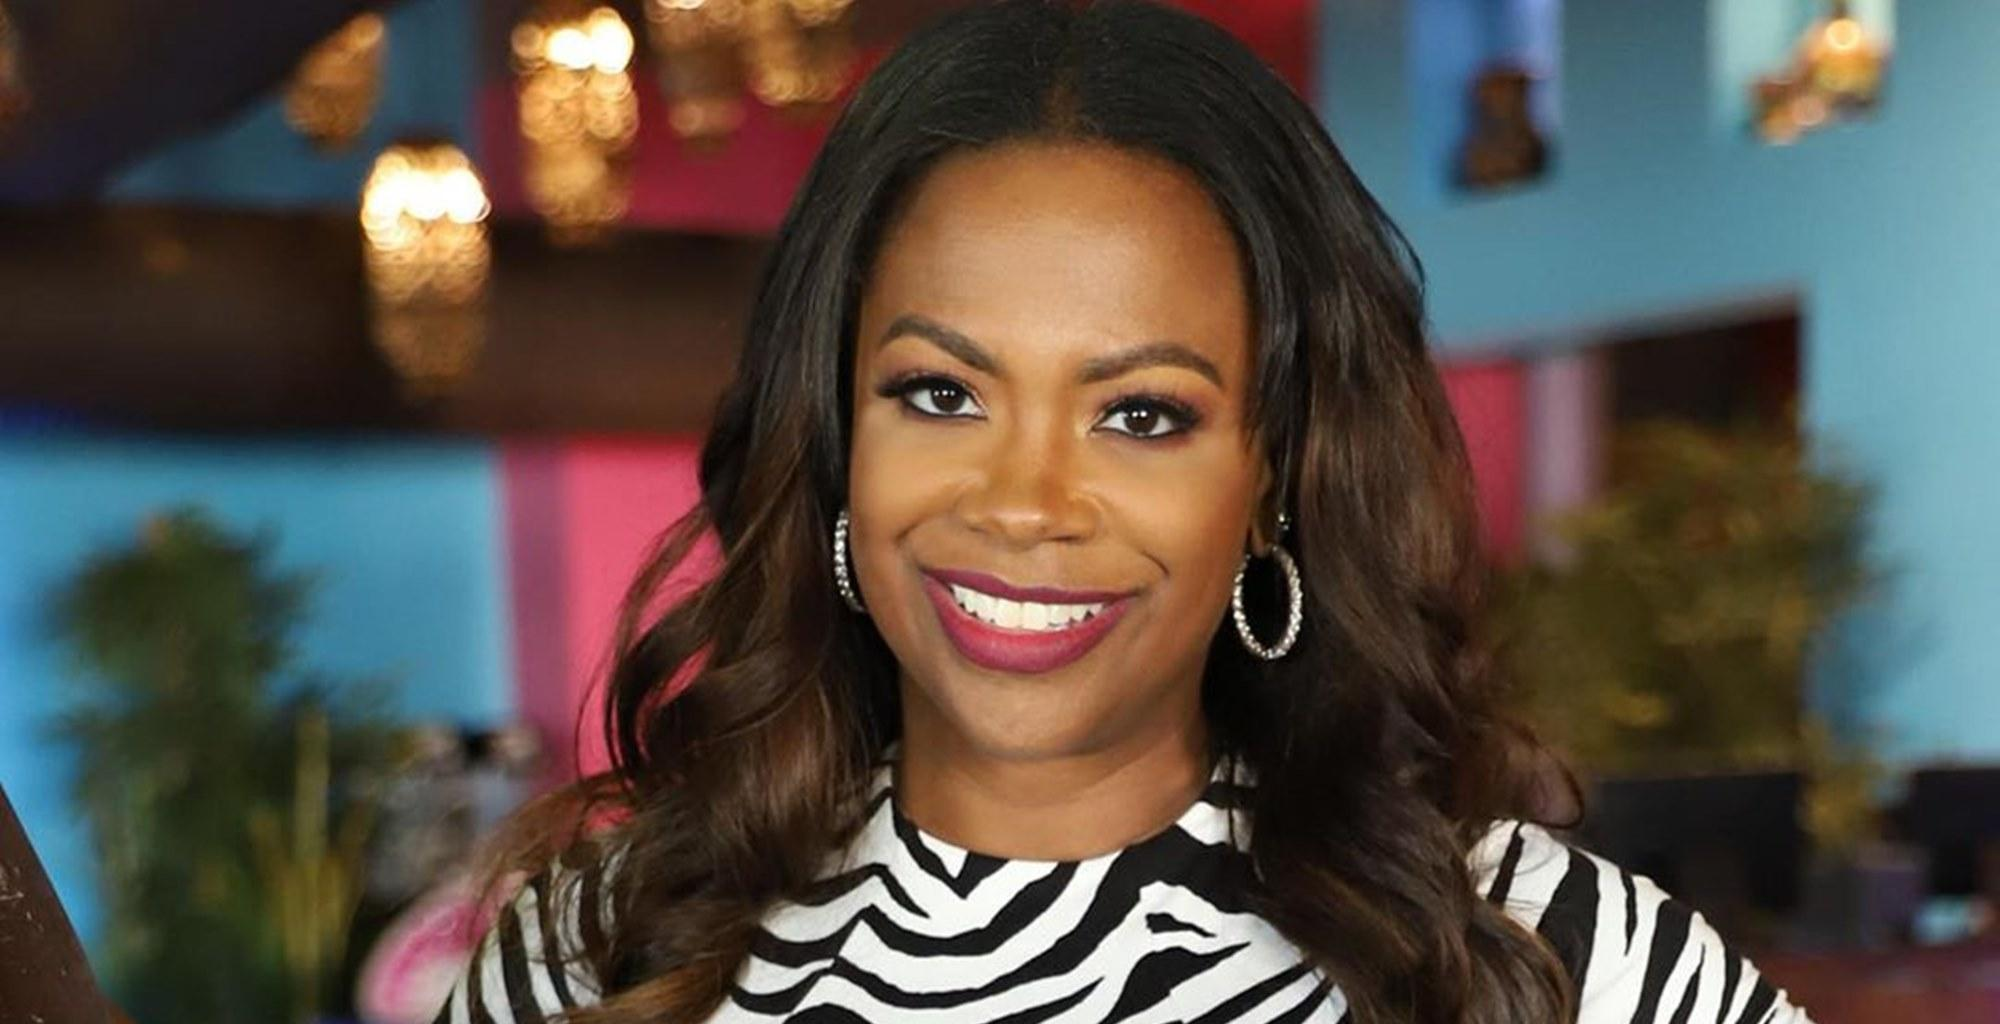 Kandi Burruss's Baby Daughter, Blaze Tucker, Lands Her First Modeling Gig And Looks Adorable In The Photos